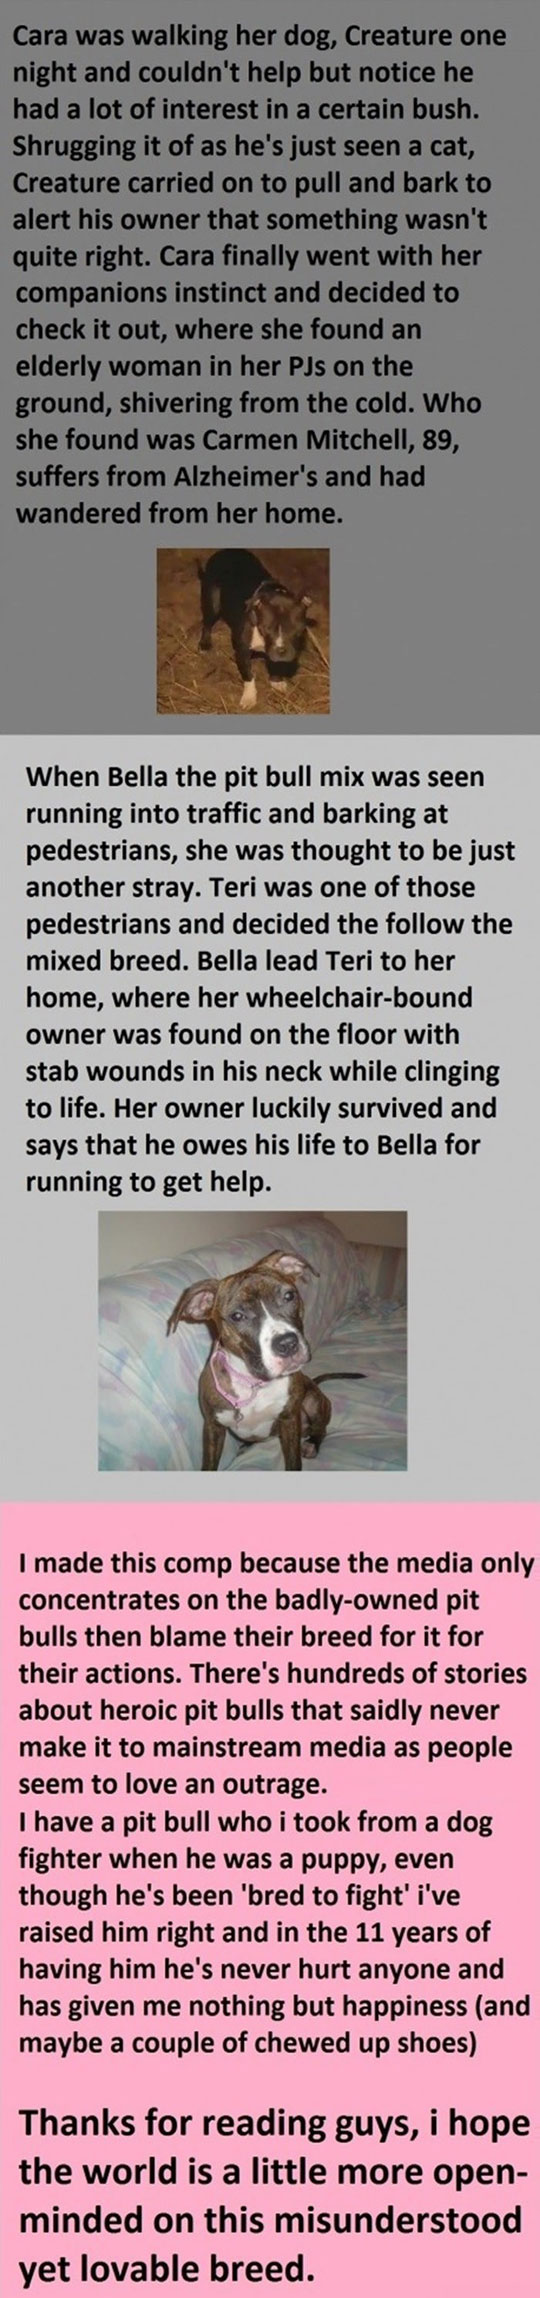 cool-pit-bull-hero-stories